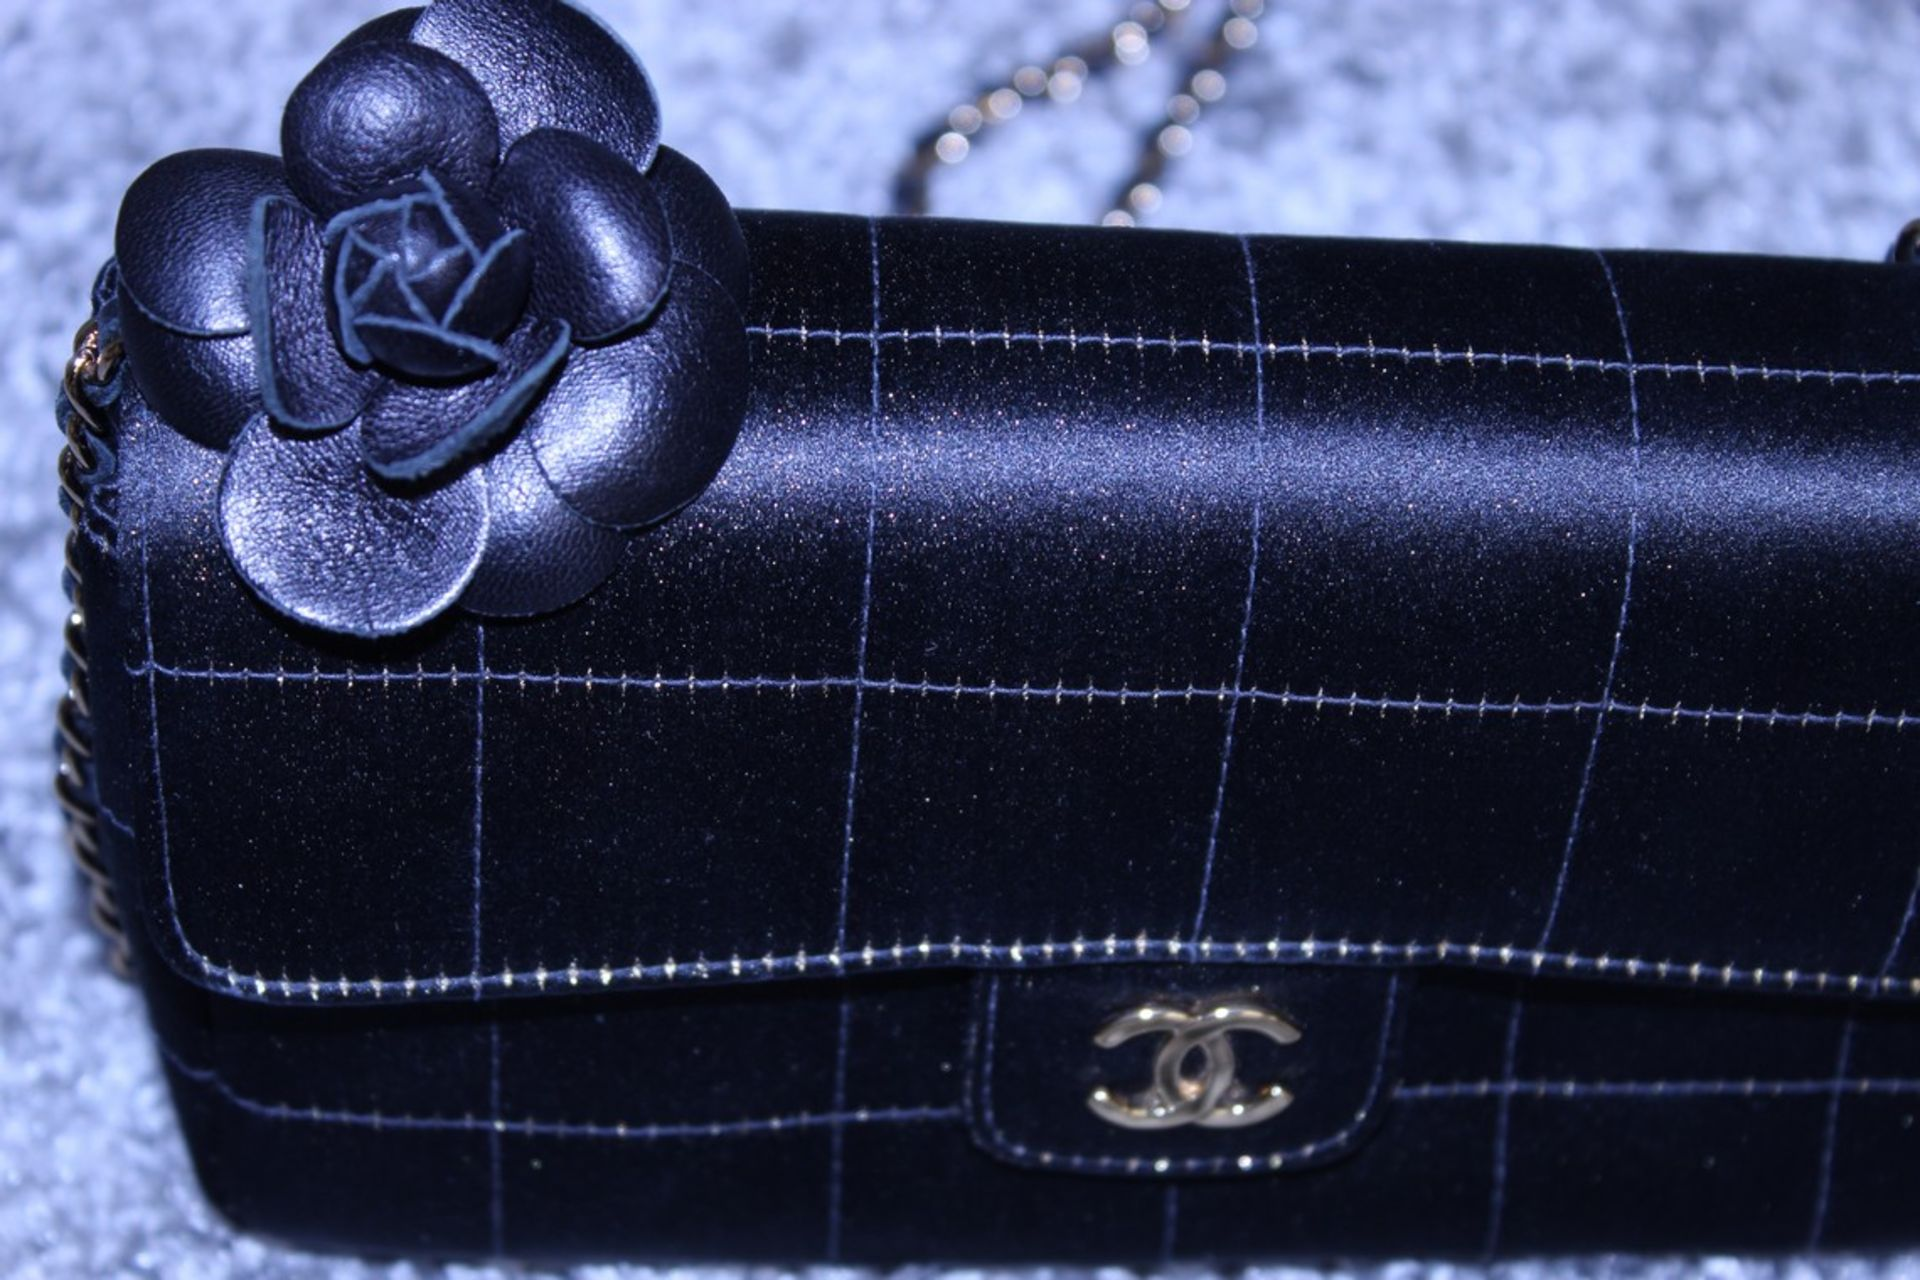 RRP £3,500 Chanel Timess Silk Bag, Black Canvas Square Quilted, Gold Chain Handles (Production - Image 2 of 3